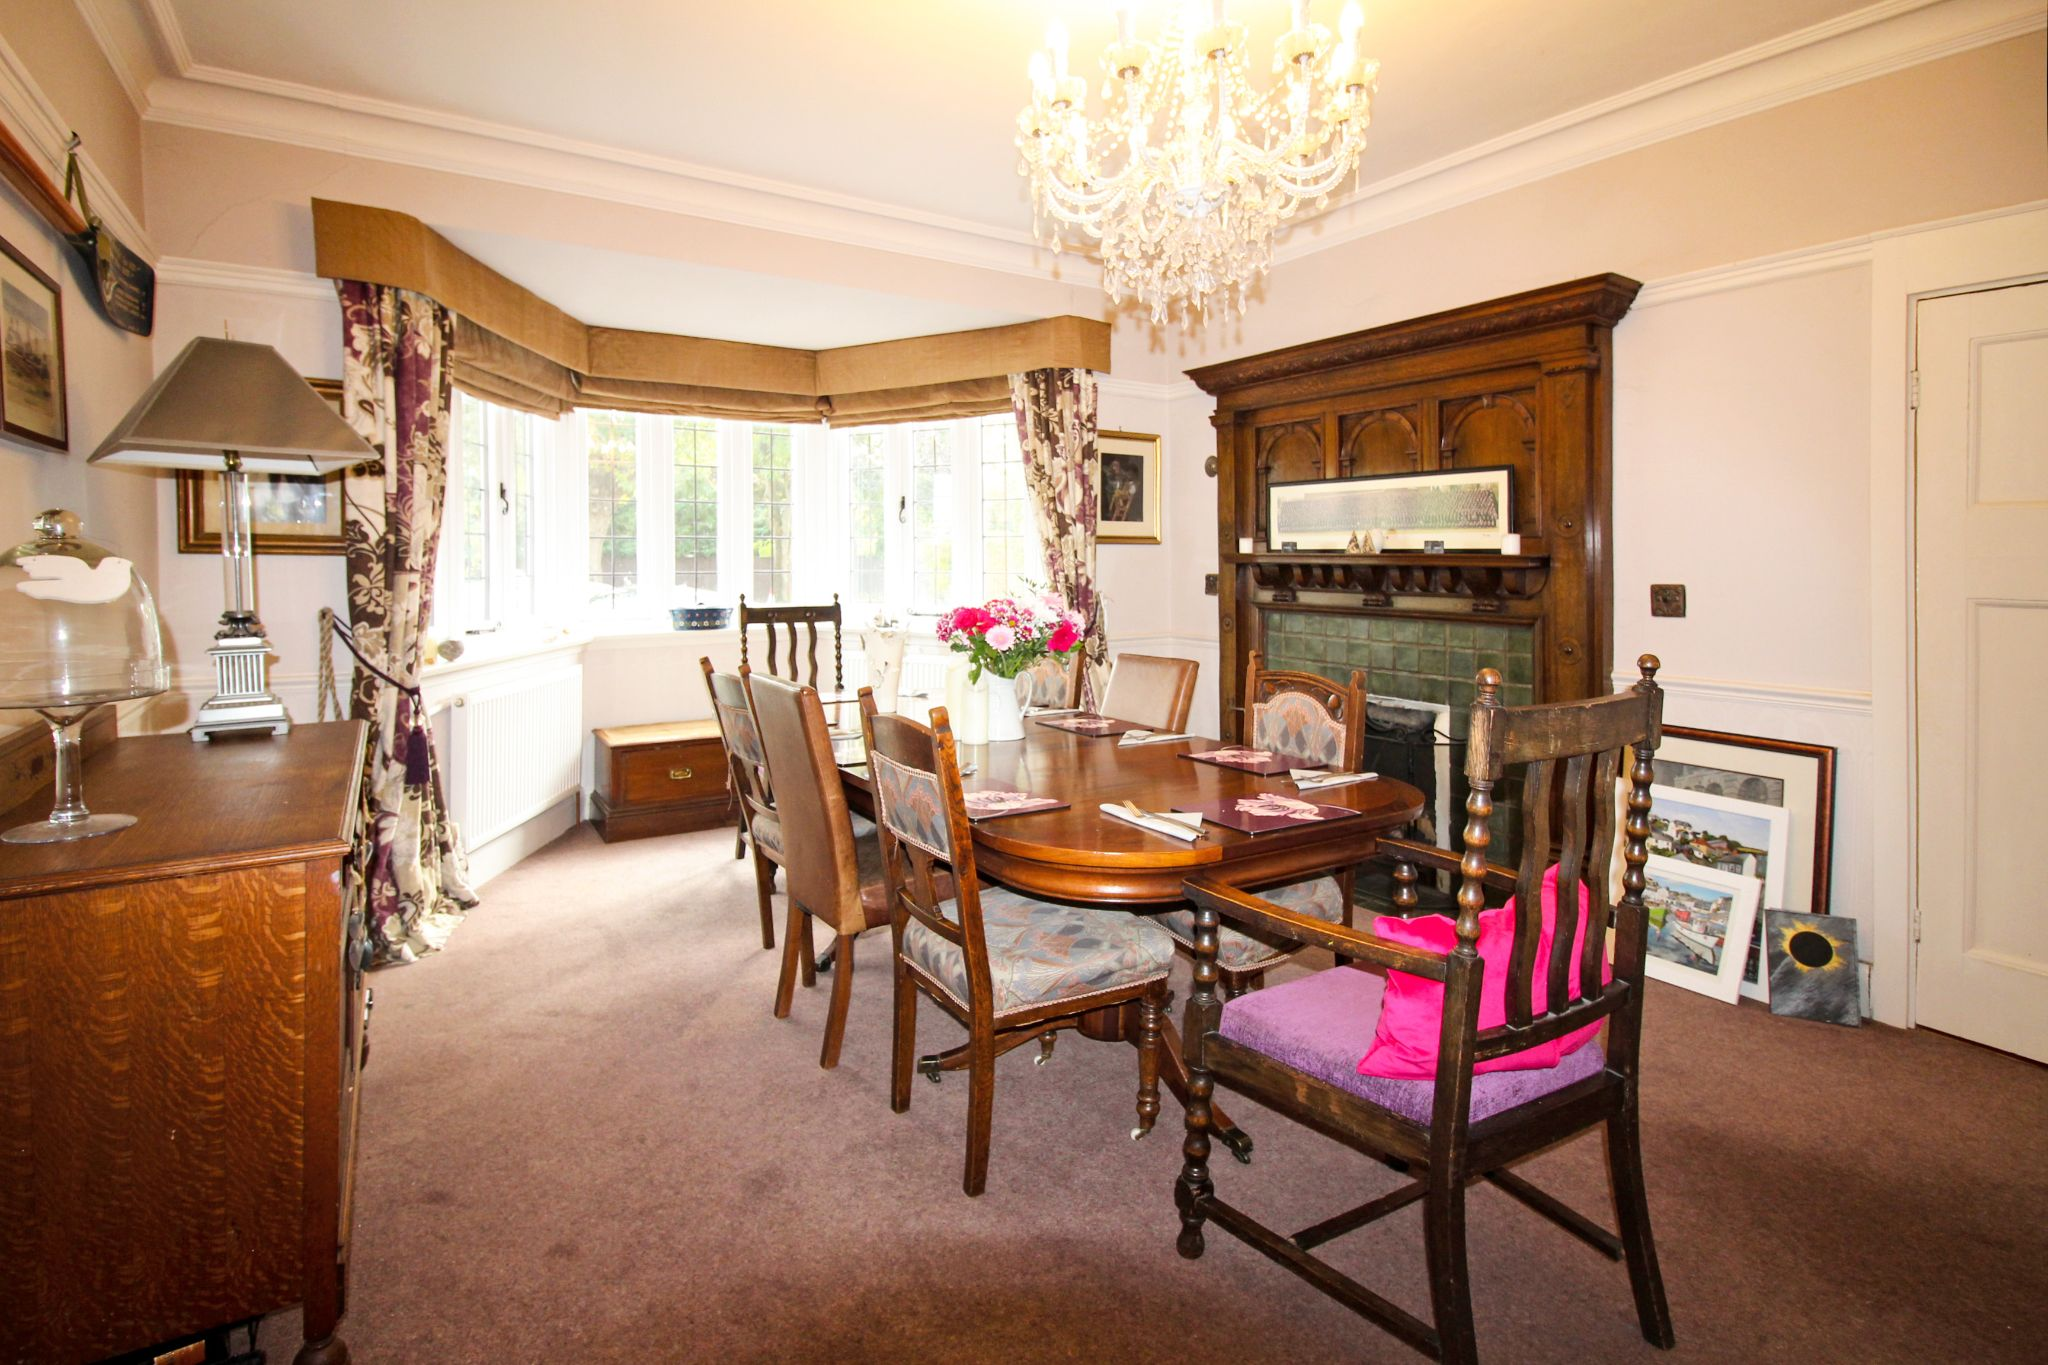 5 bedroom detached house For Sale in Solihull - Photograph 9.